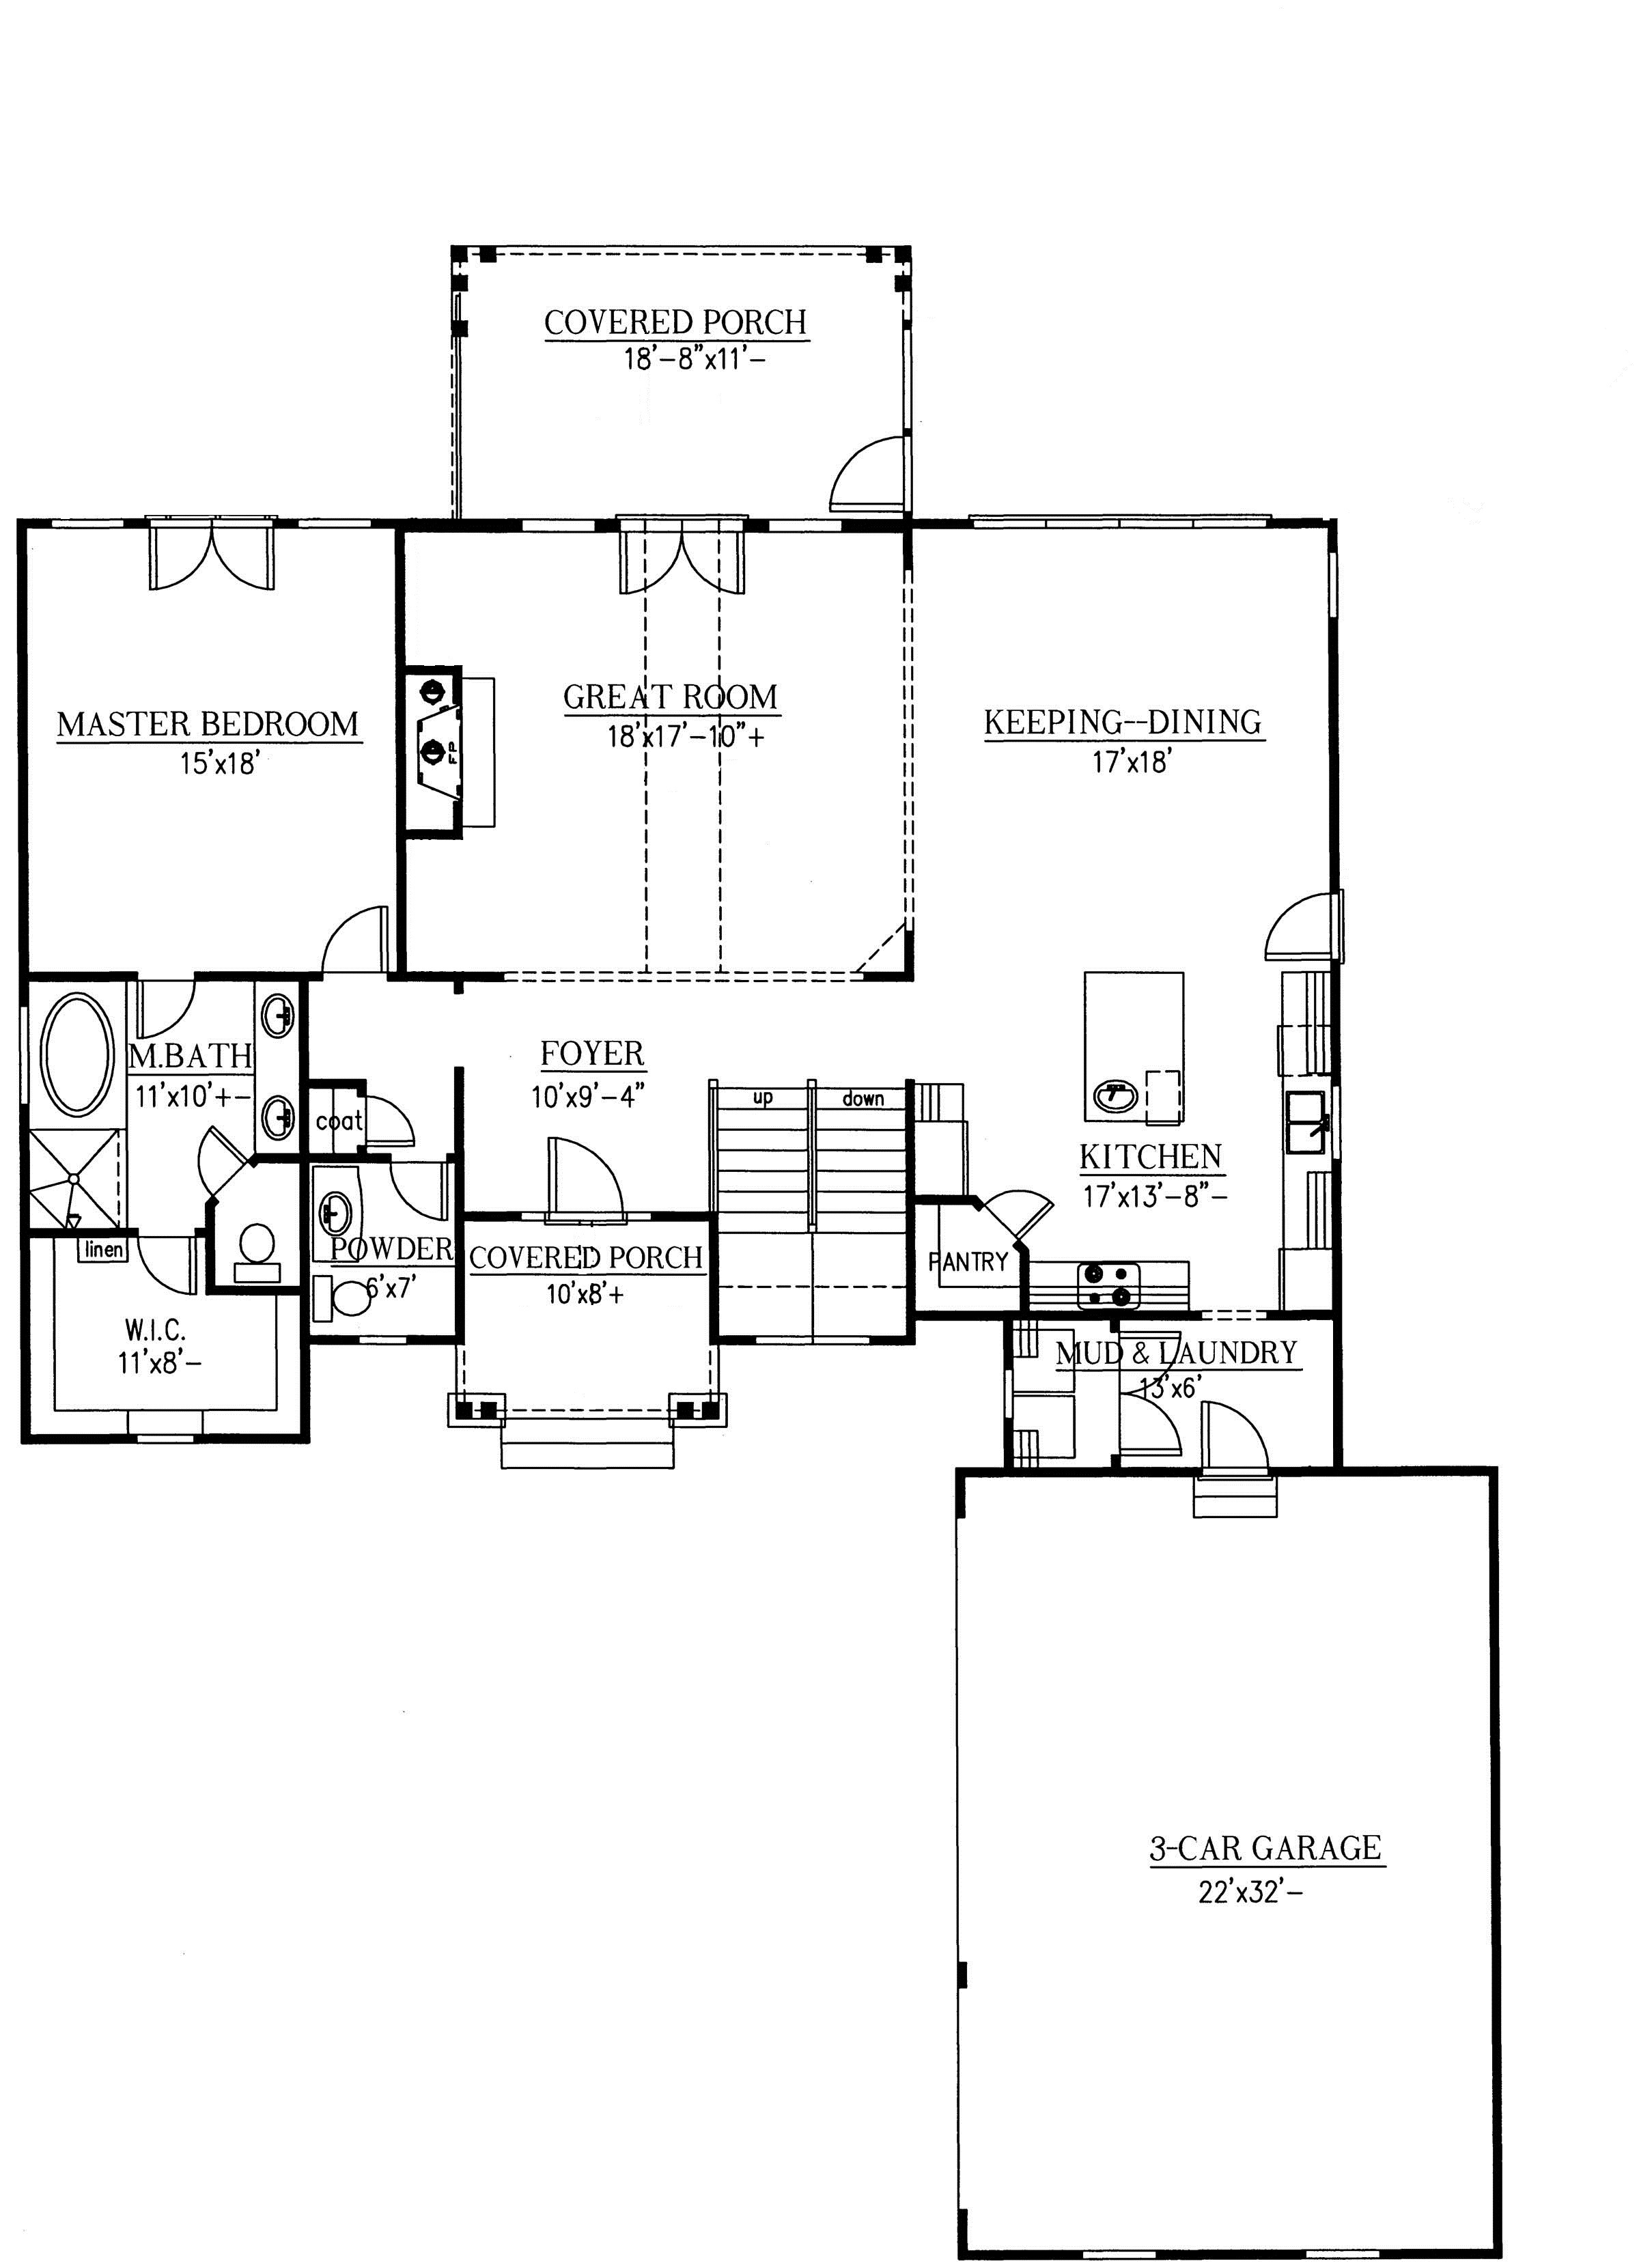 Great room with loft first floor plan sdl custom homes for House plans with large great rooms